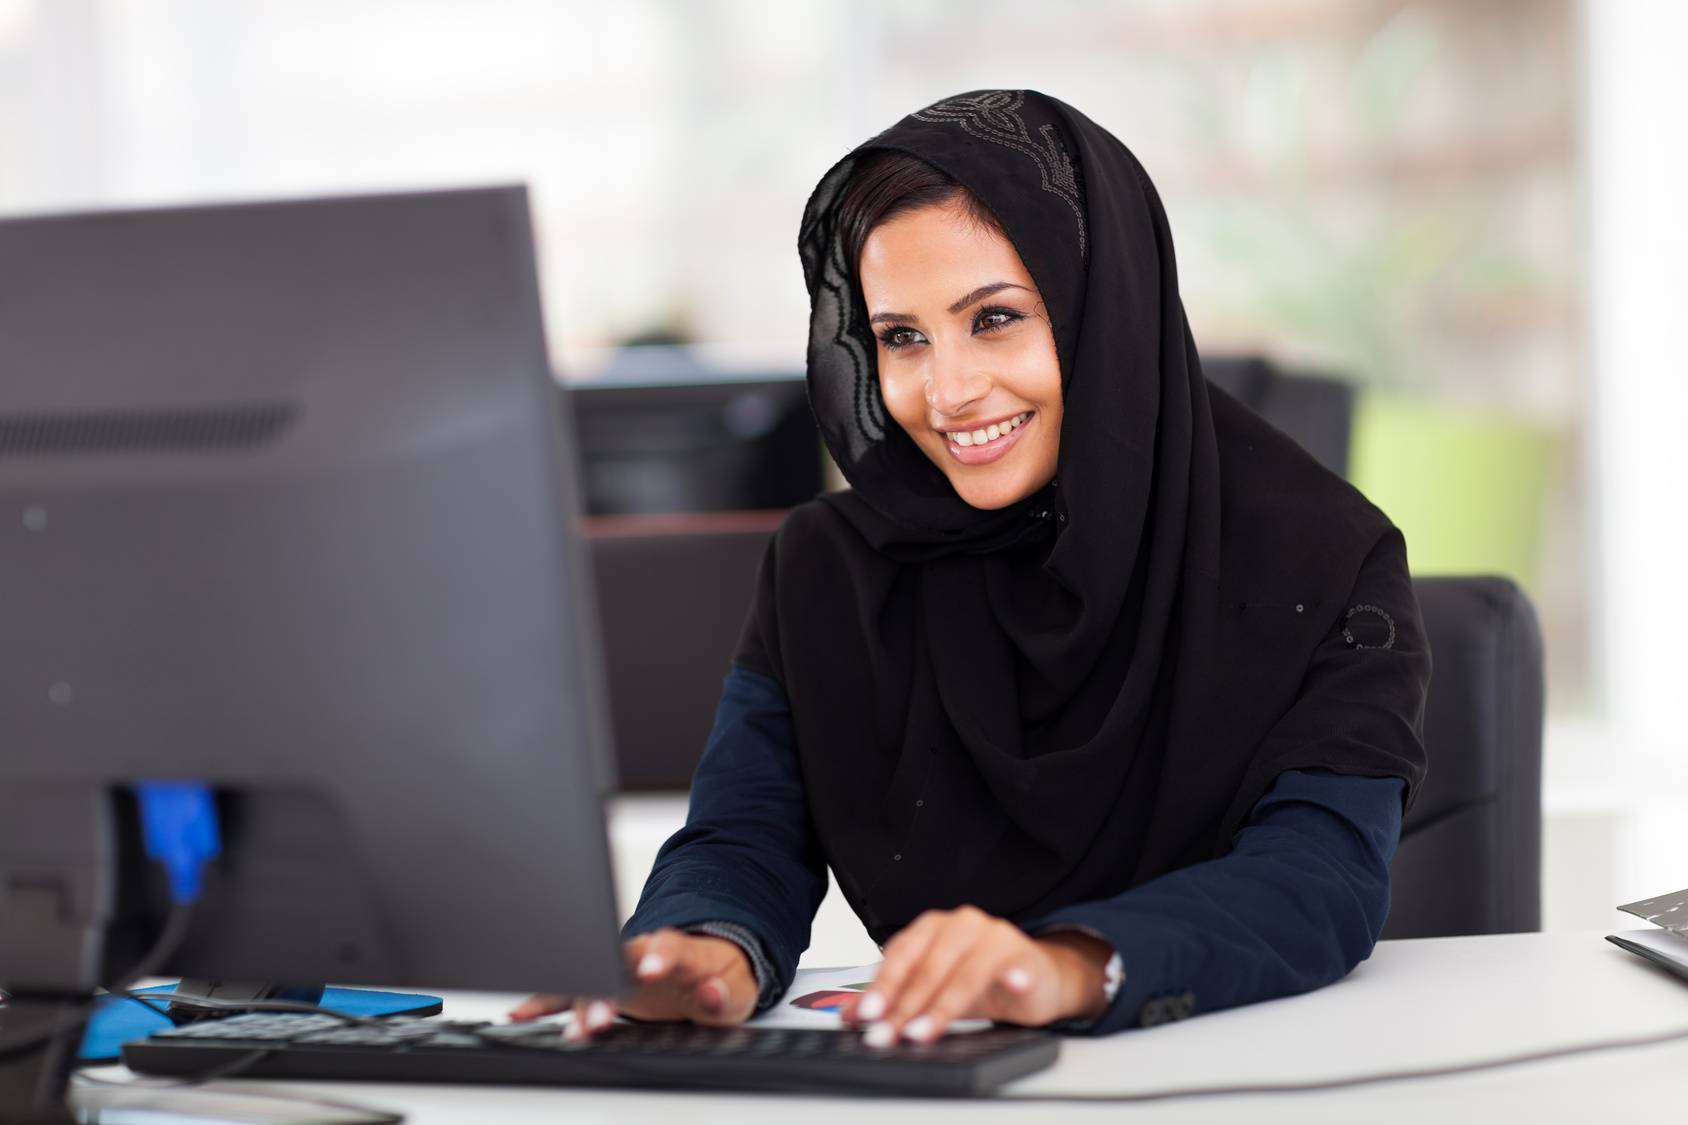 attractive female Arabic corporate worker working on computer